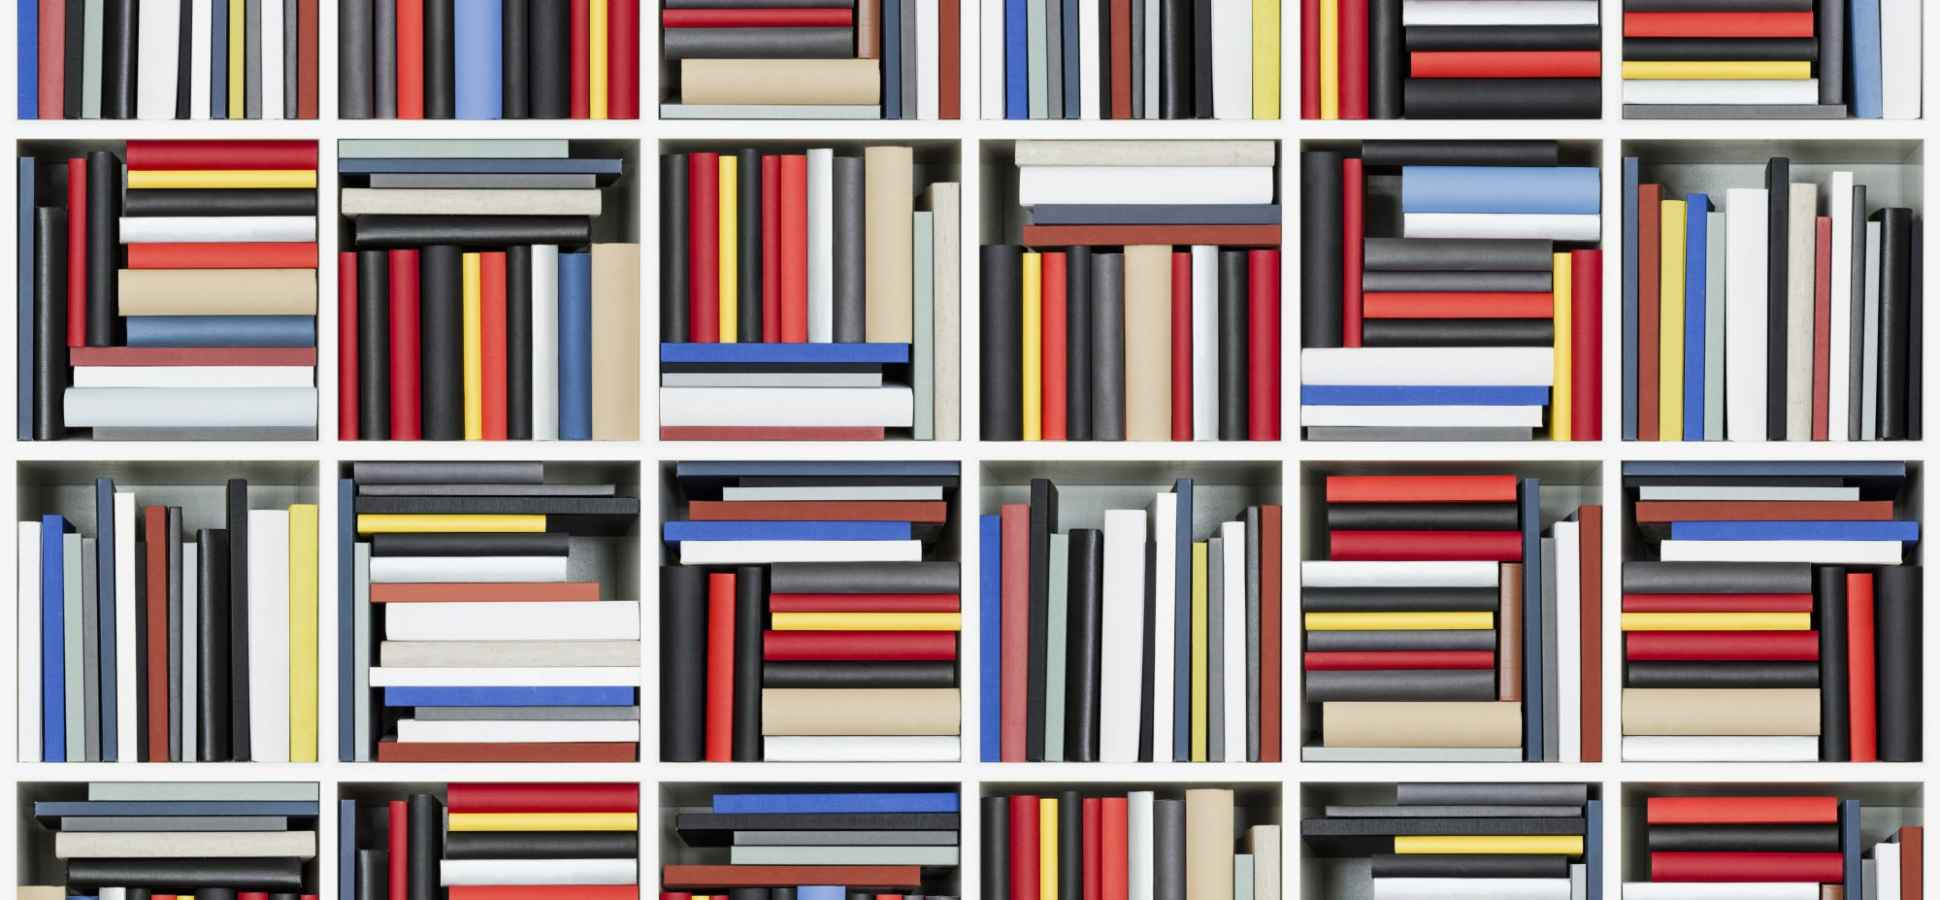 The 100 Best Business Books of 2015